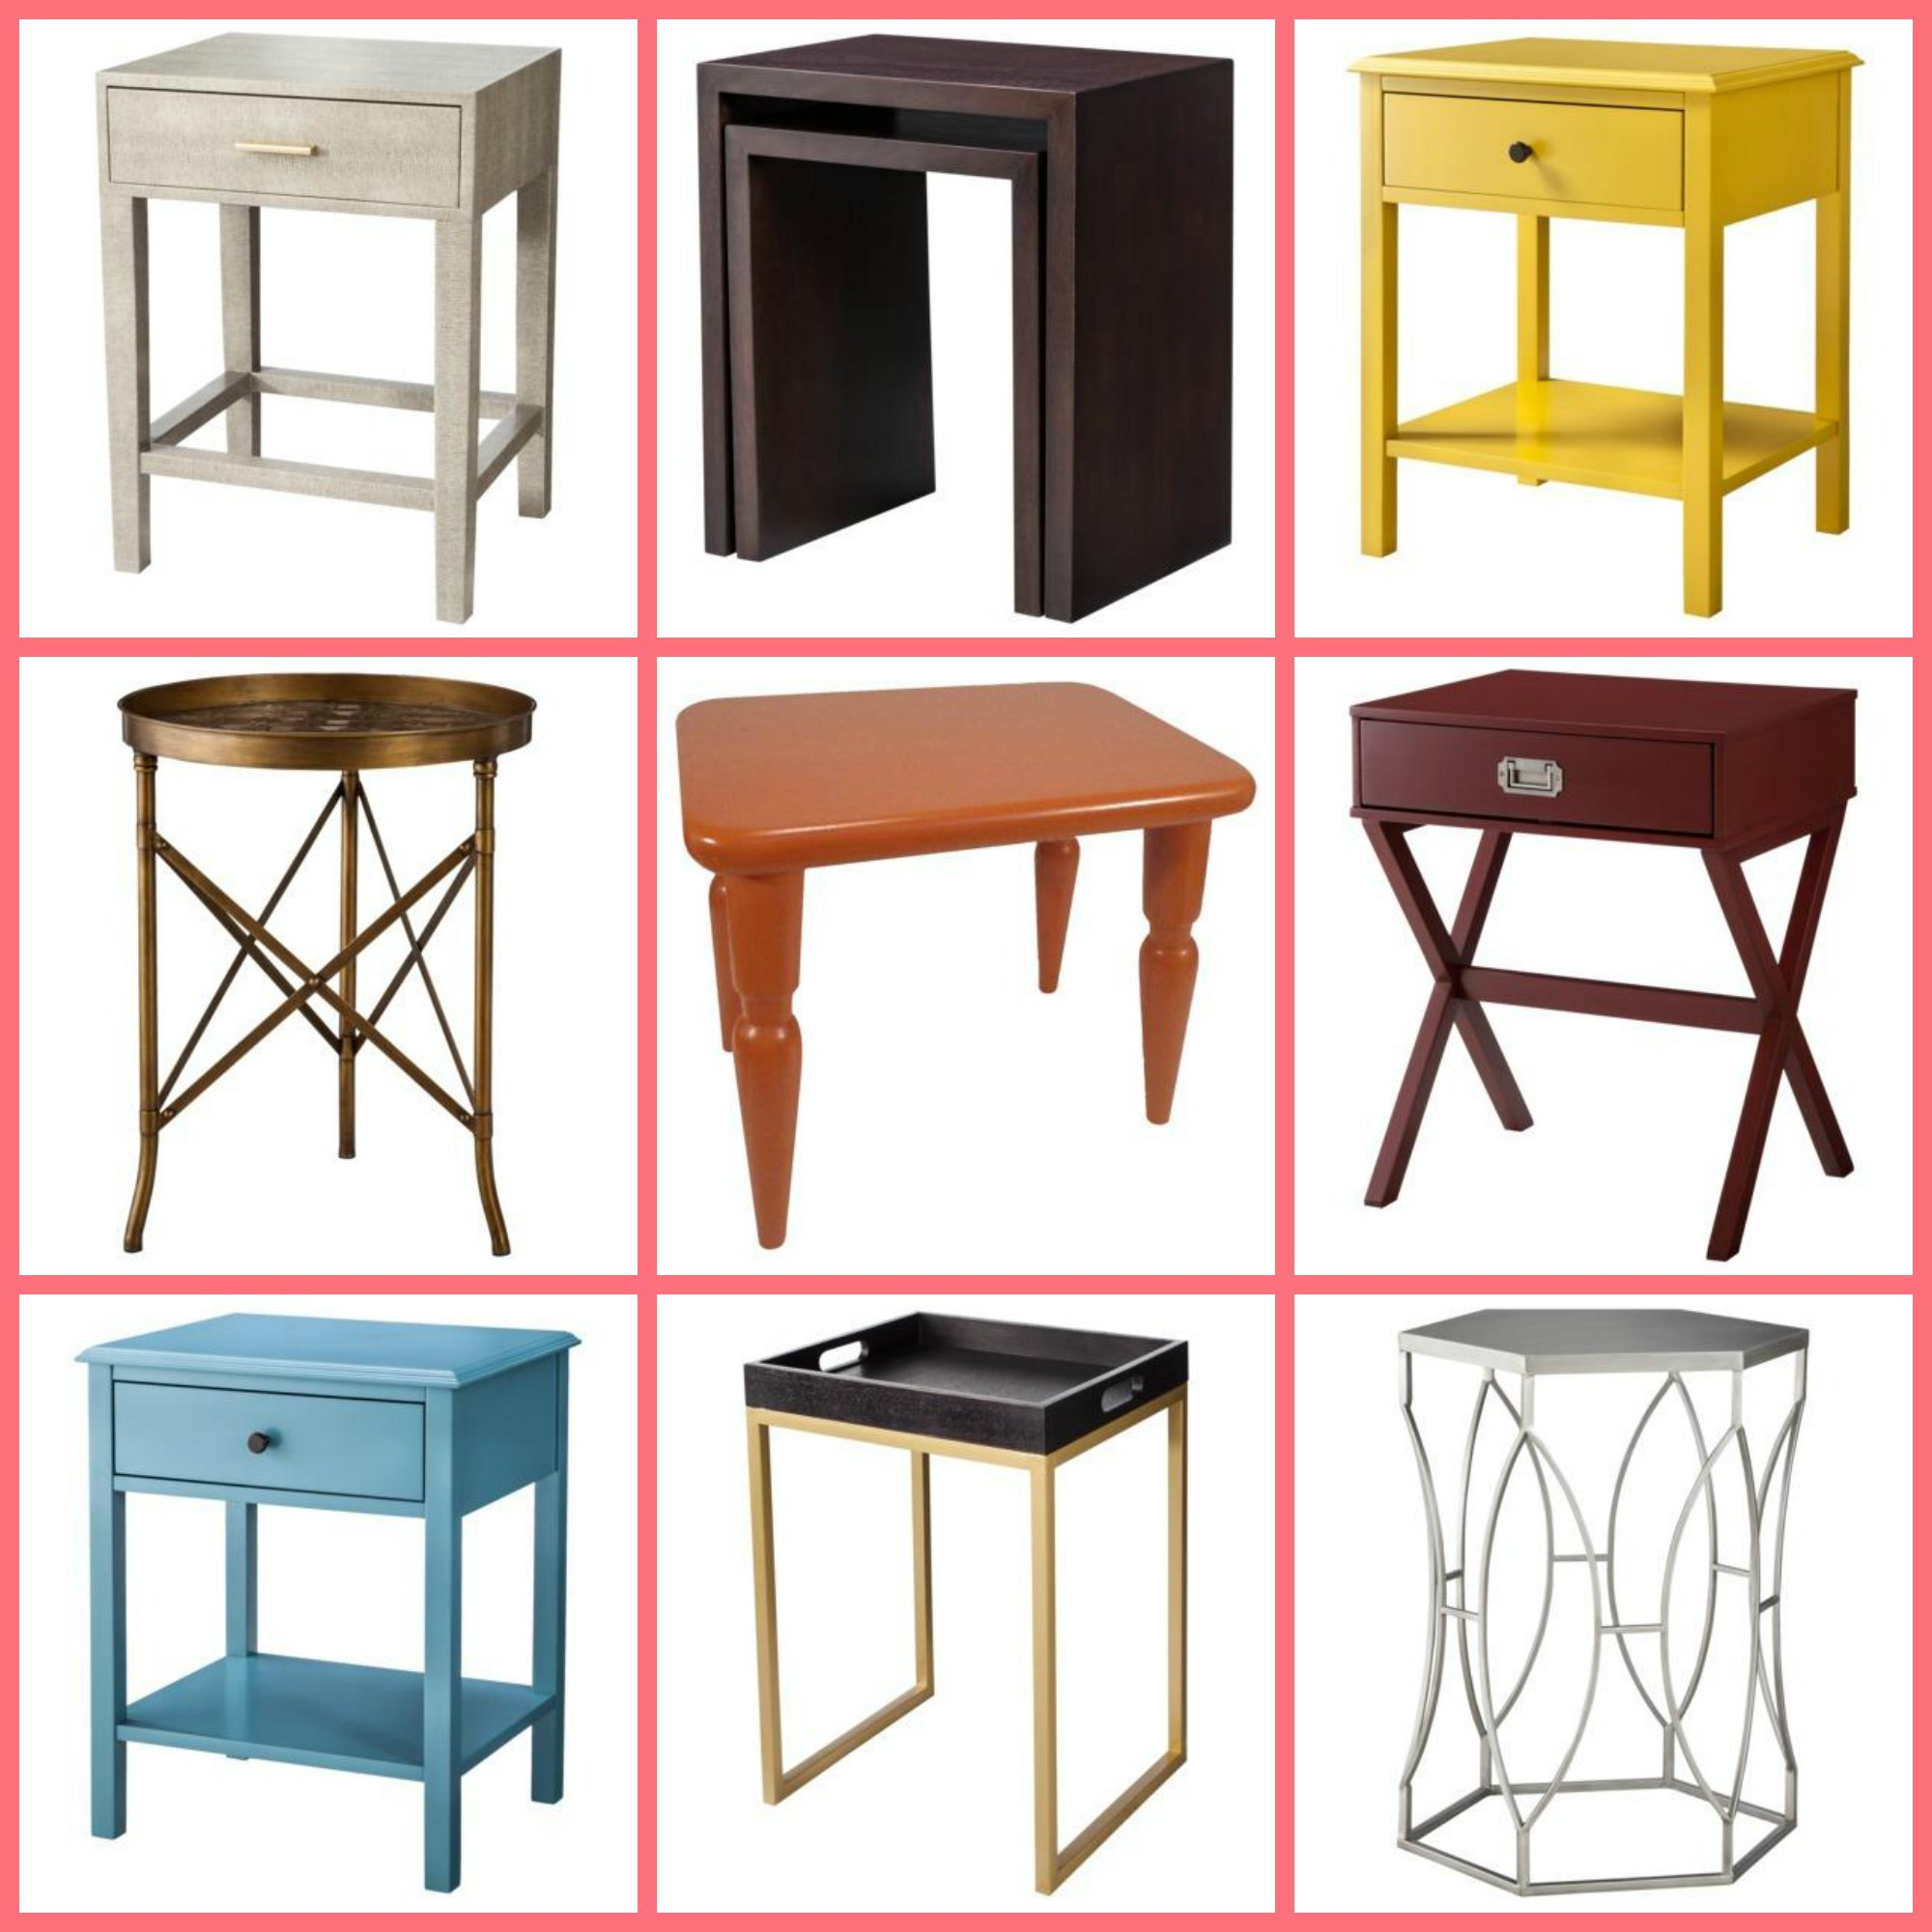 target threshold accent tables take your targertthr teal table clockwise from top left wood trunk jcpenney patio furniture red end and acrylic coffee small high oriental lamps